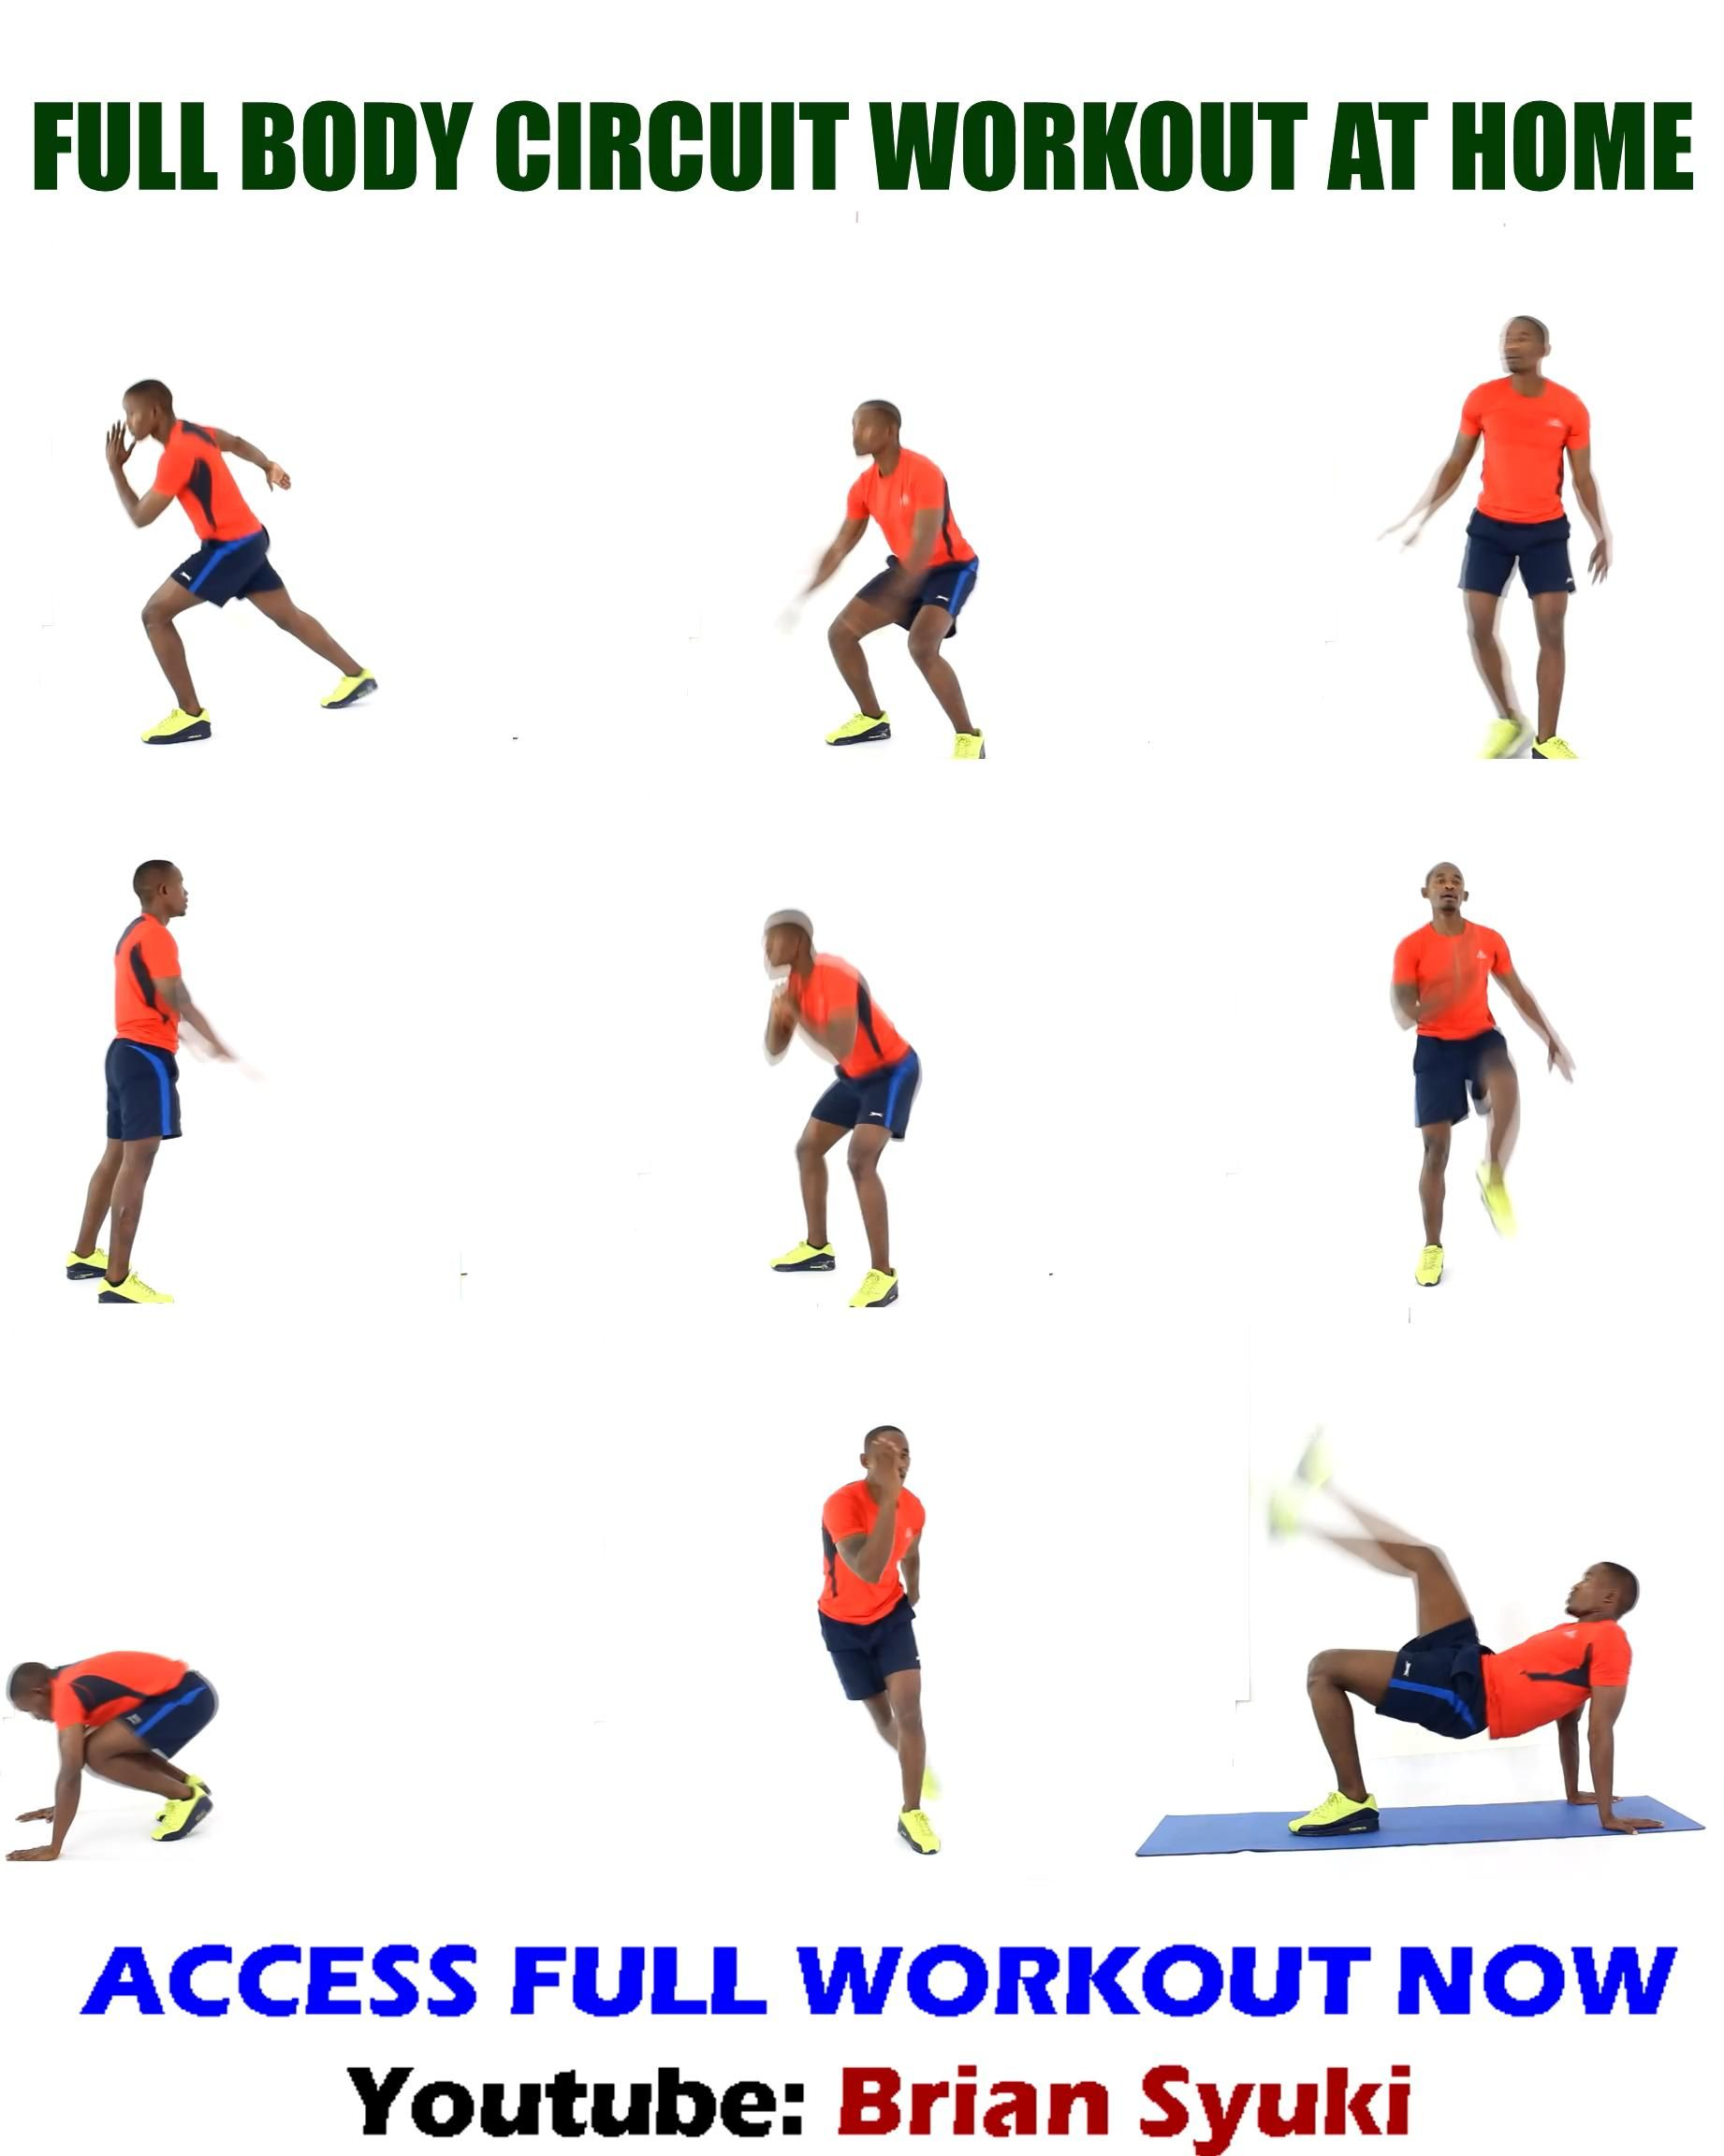 Full Body Circuit Workout at Home